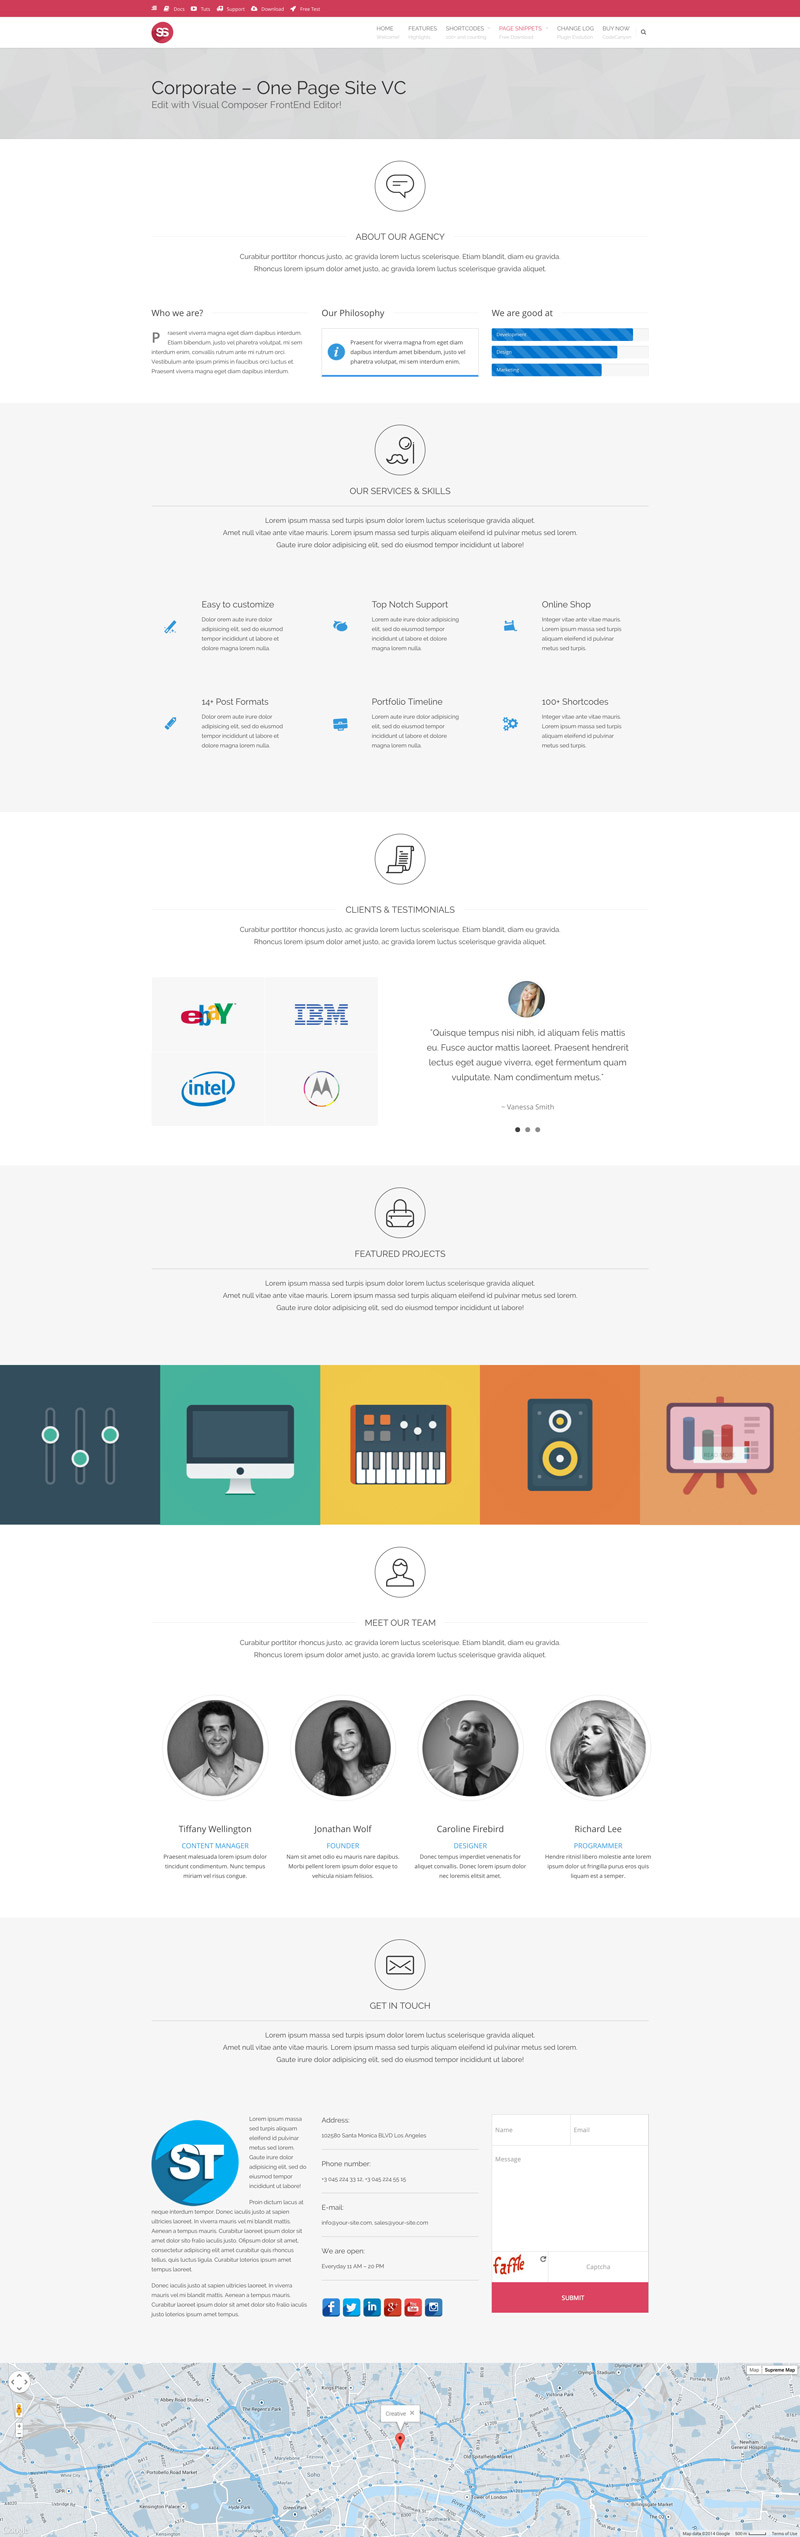 Corporate One Page Site